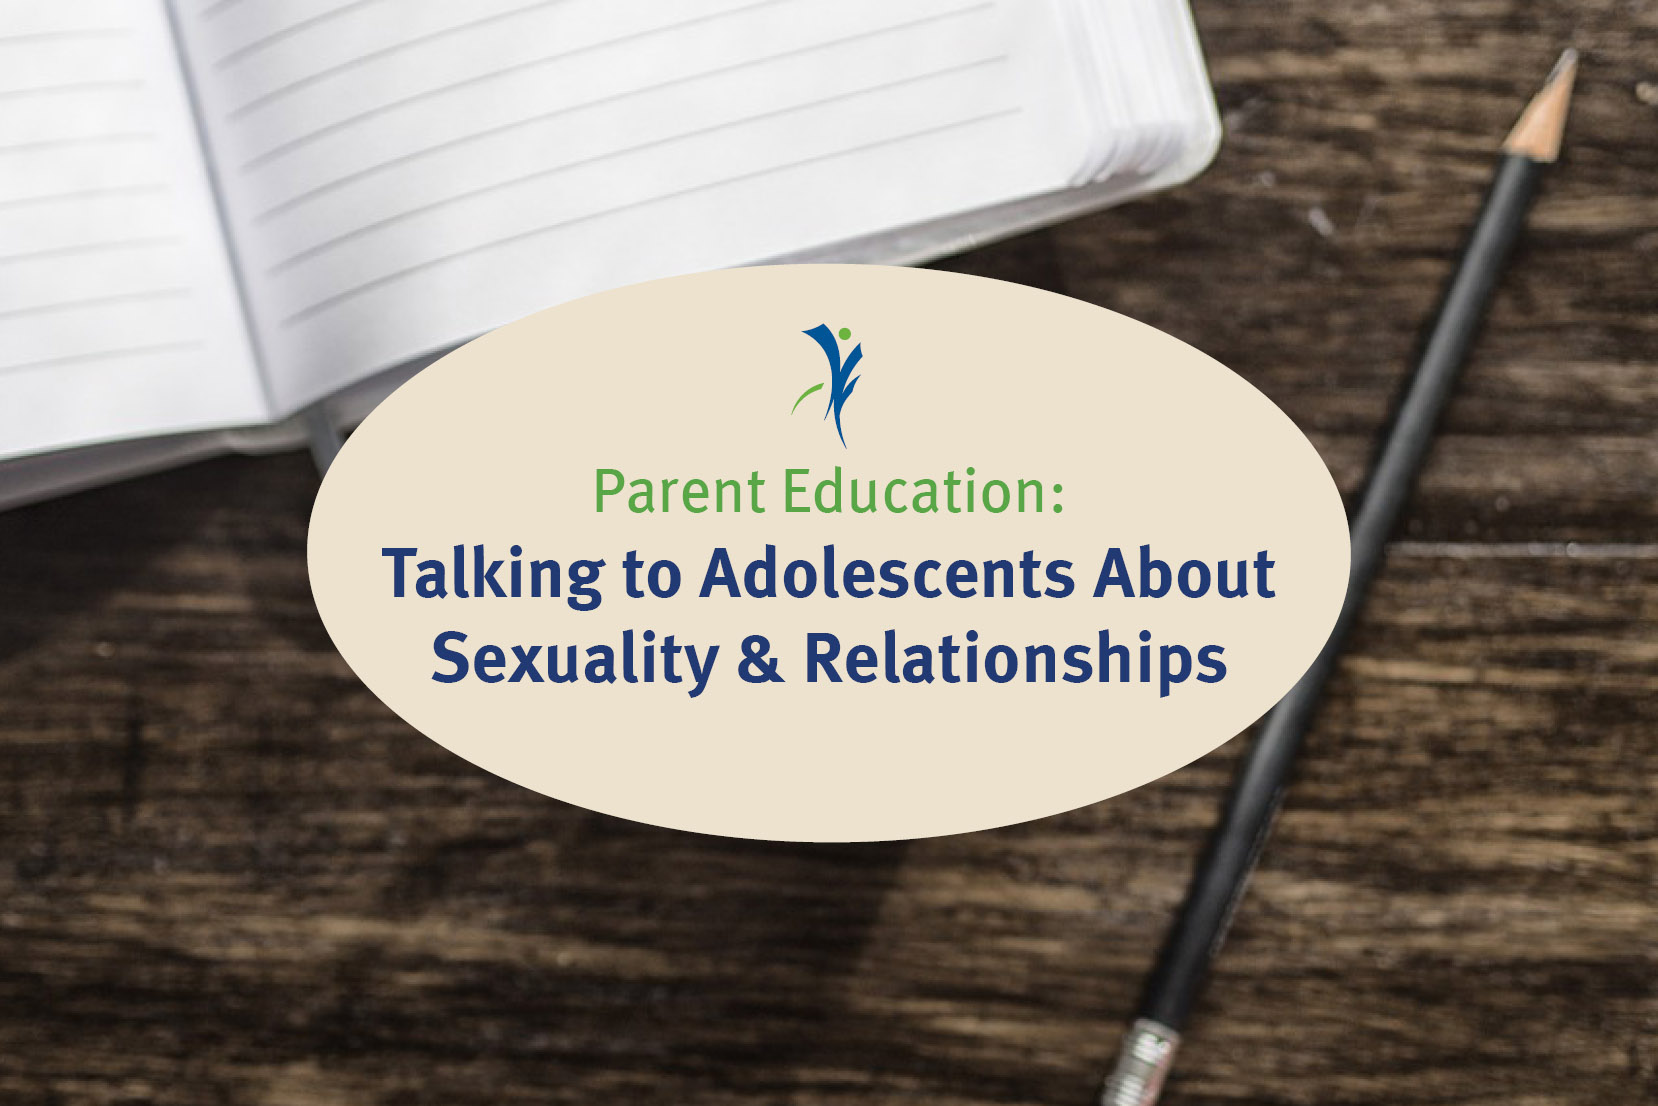 Parent Education: Talking to Adolescents about Sexuality & Relationships